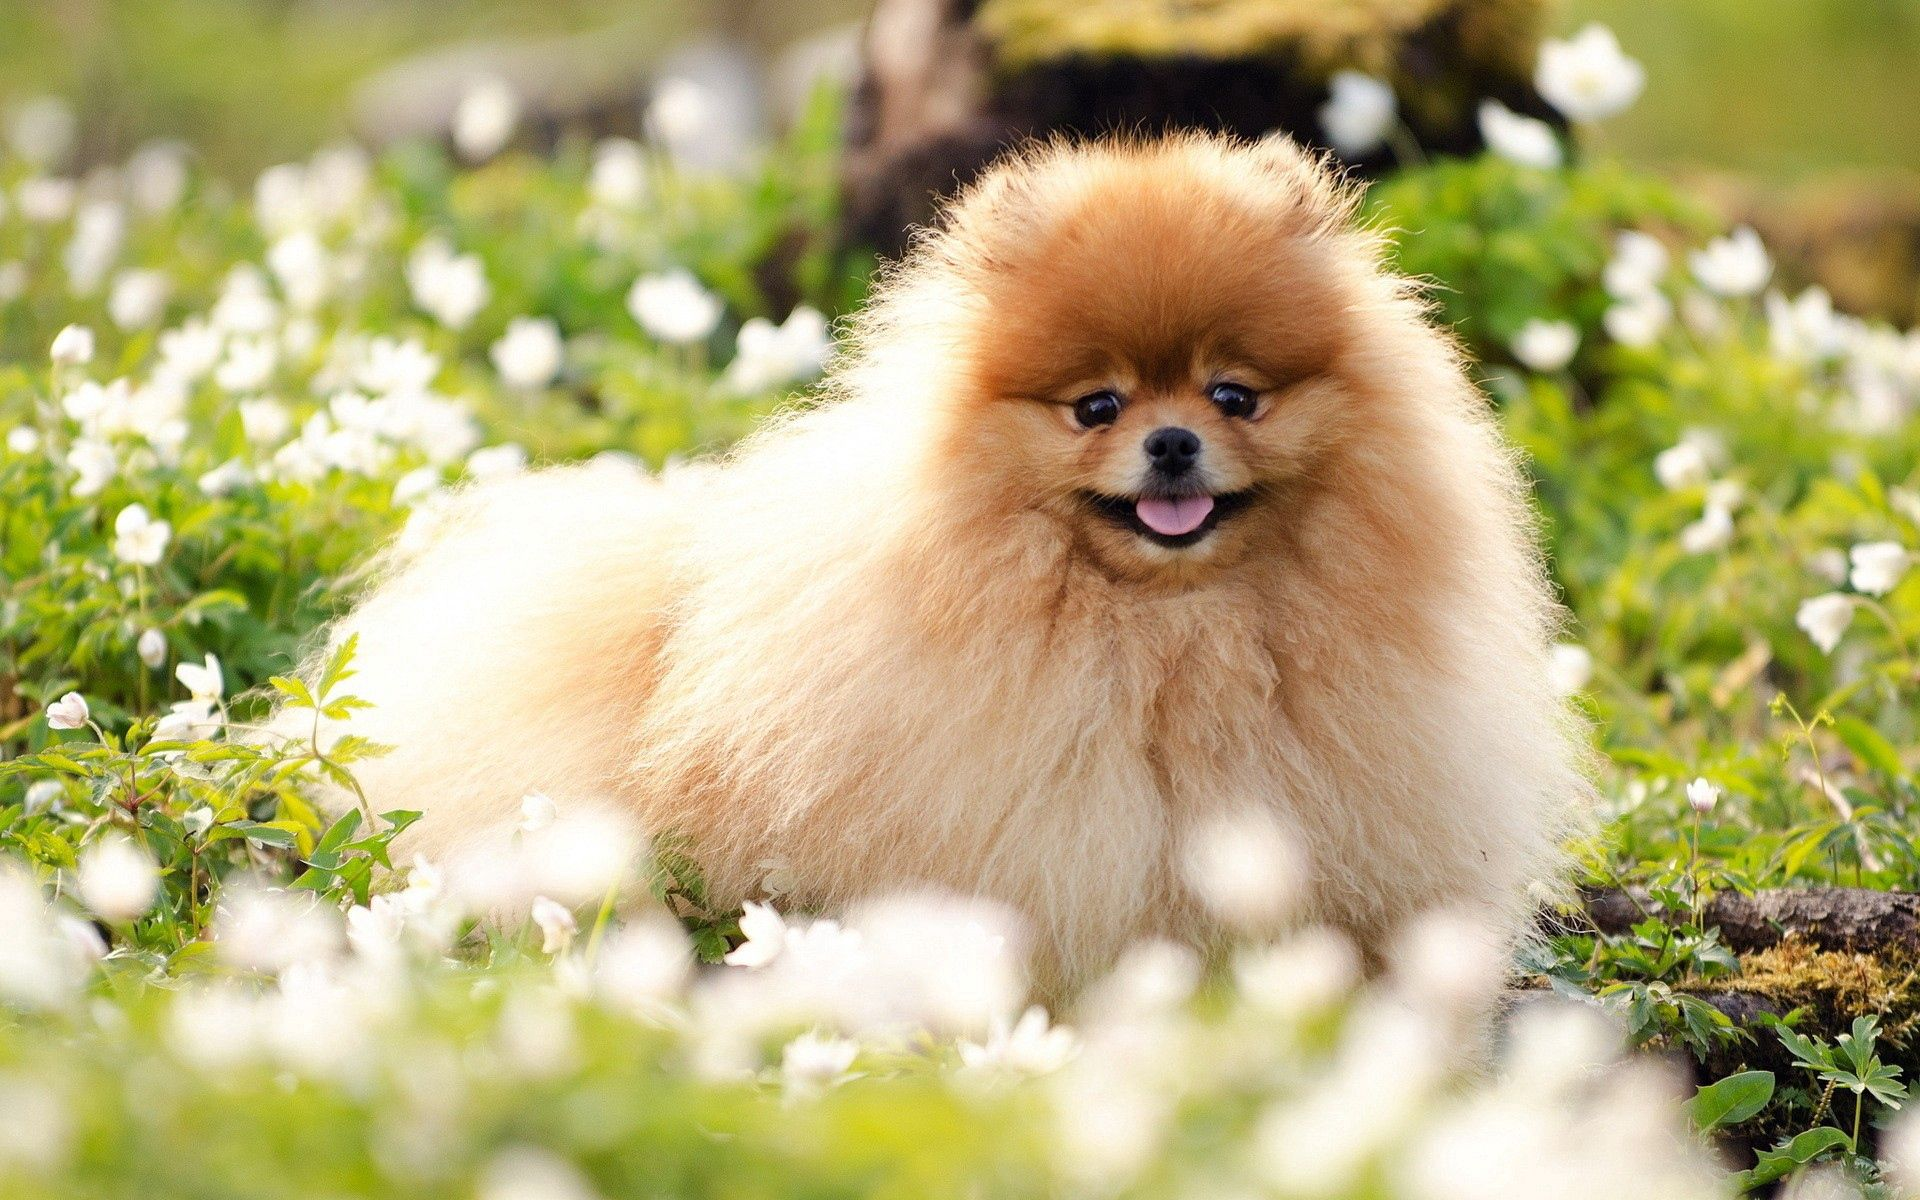 137506 download wallpaper Animals, Dog, Fluffy, Grass, Nice, Sweetheart, Flowers screensavers and pictures for free